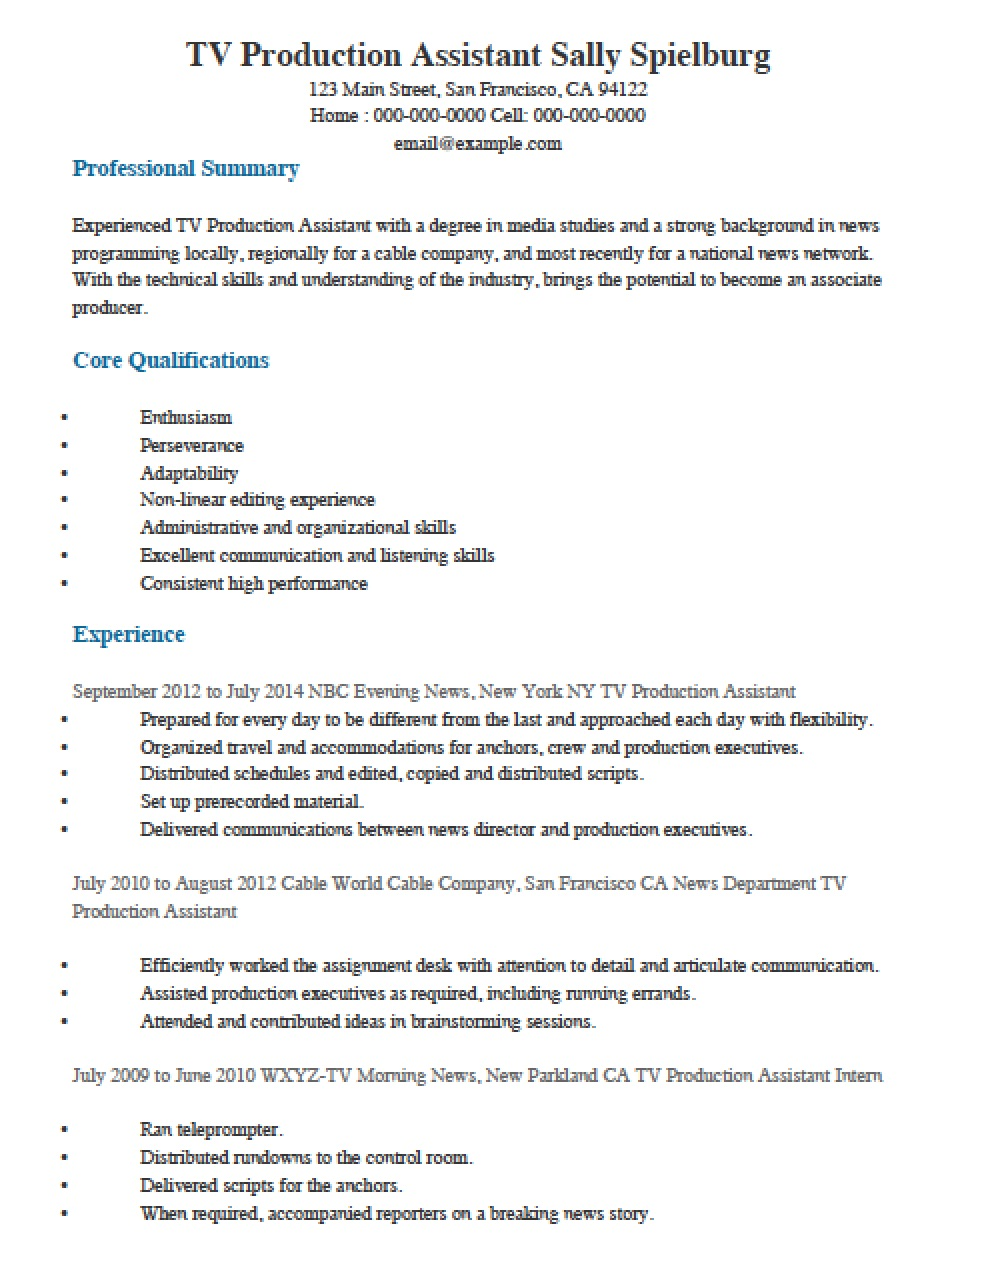 Resume help for disability gaps